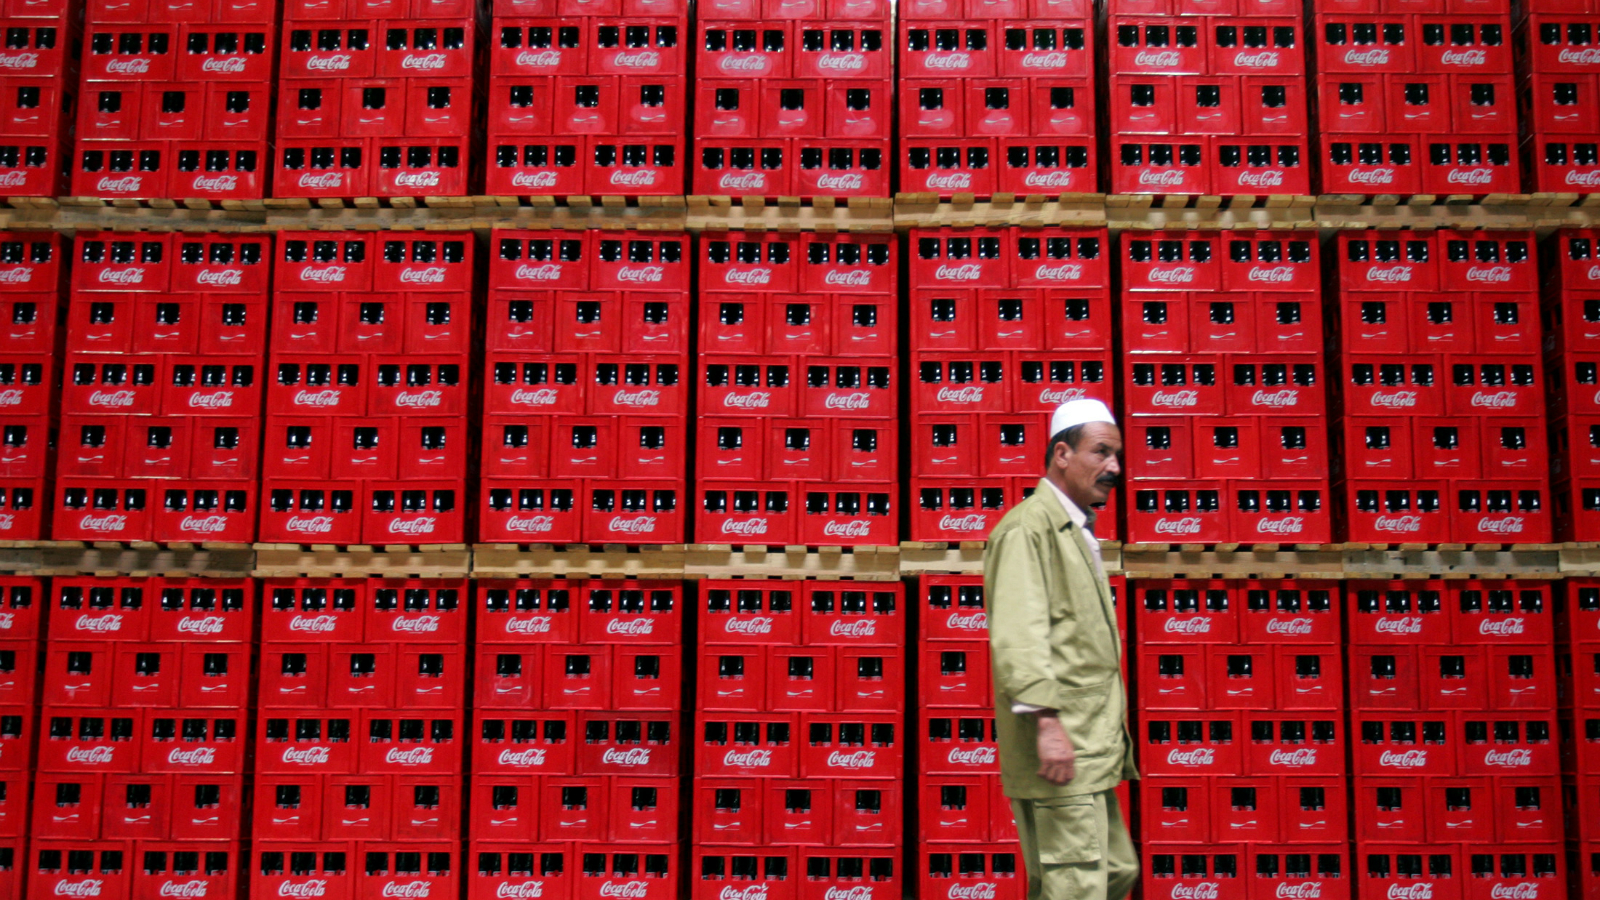 A worker walks in front of crates of Coca-Cola at the newly inaugurated bottling plant in Kabul September 10, 2006. Coca-Cola, with its distinctive red-and-white logo, has come to Kabul in what is at once a sign of economic progress and a symbol of the failure of major businesses to open up in the five years since the fall of the hardline Islamist Taliban.